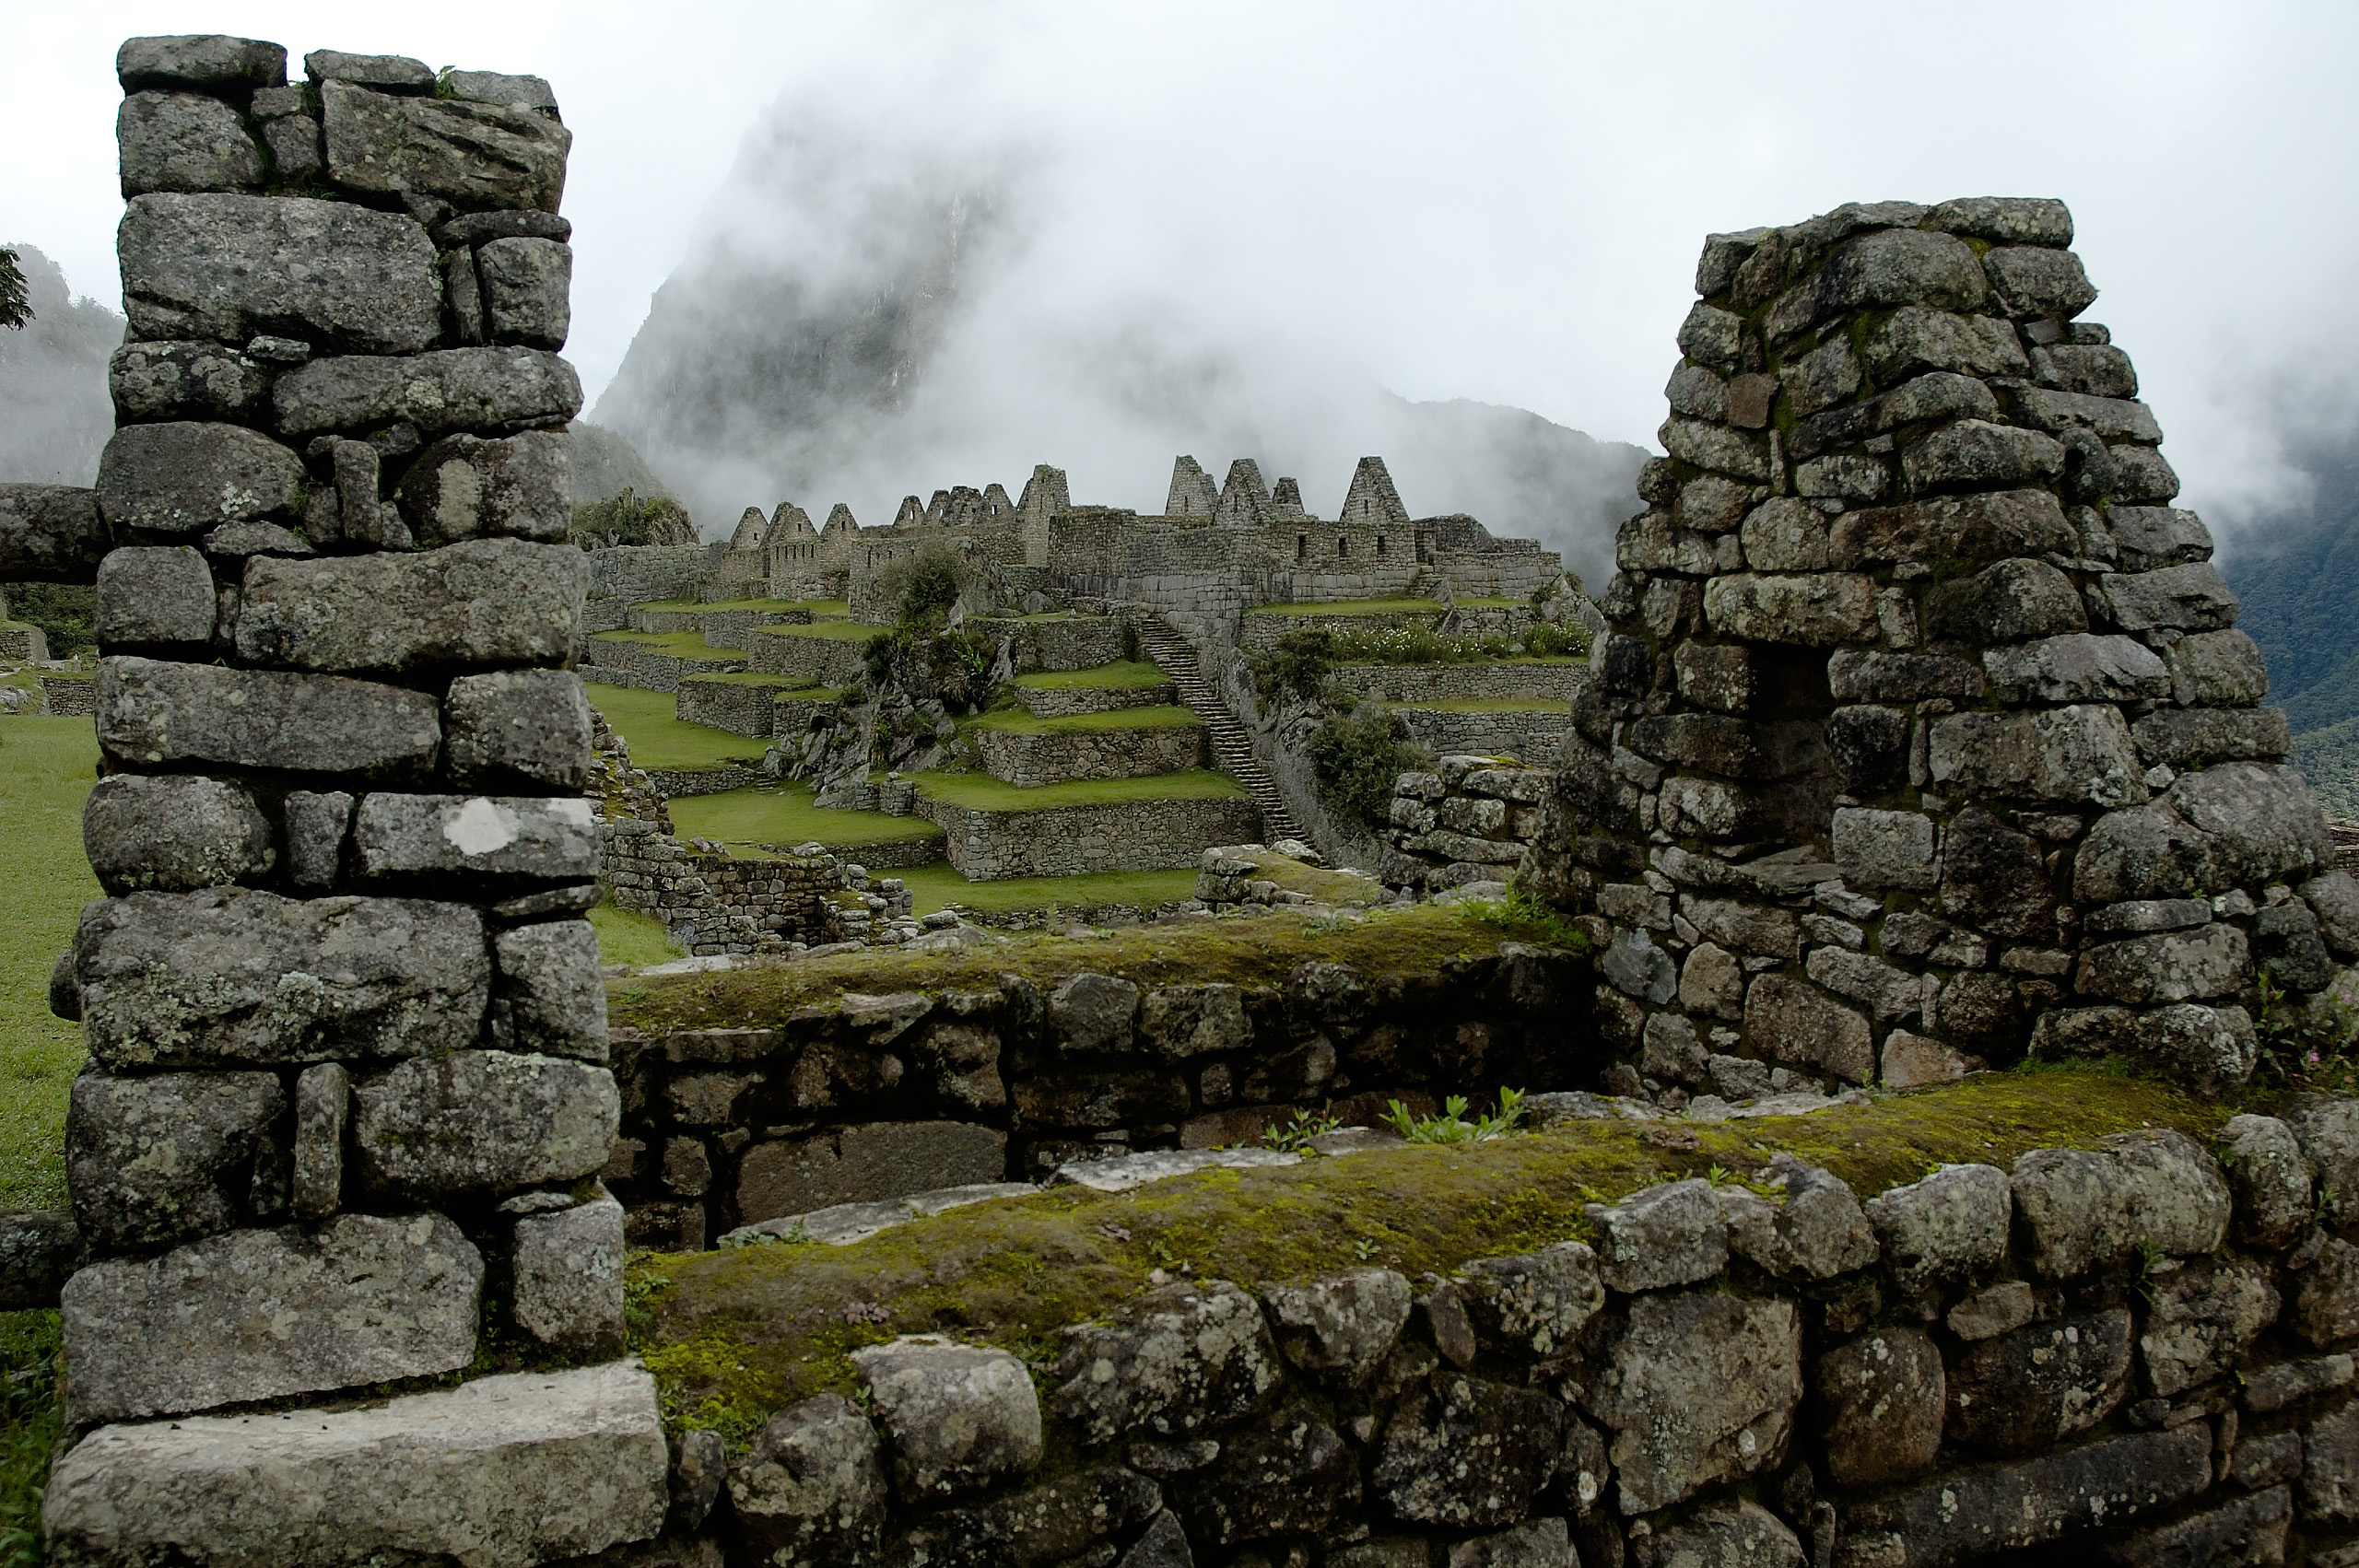 http://upload.wikimedia.org/wikipedia/commons/2/21/MachuPicchu_Residential_%28pixinn.net%29.jpg